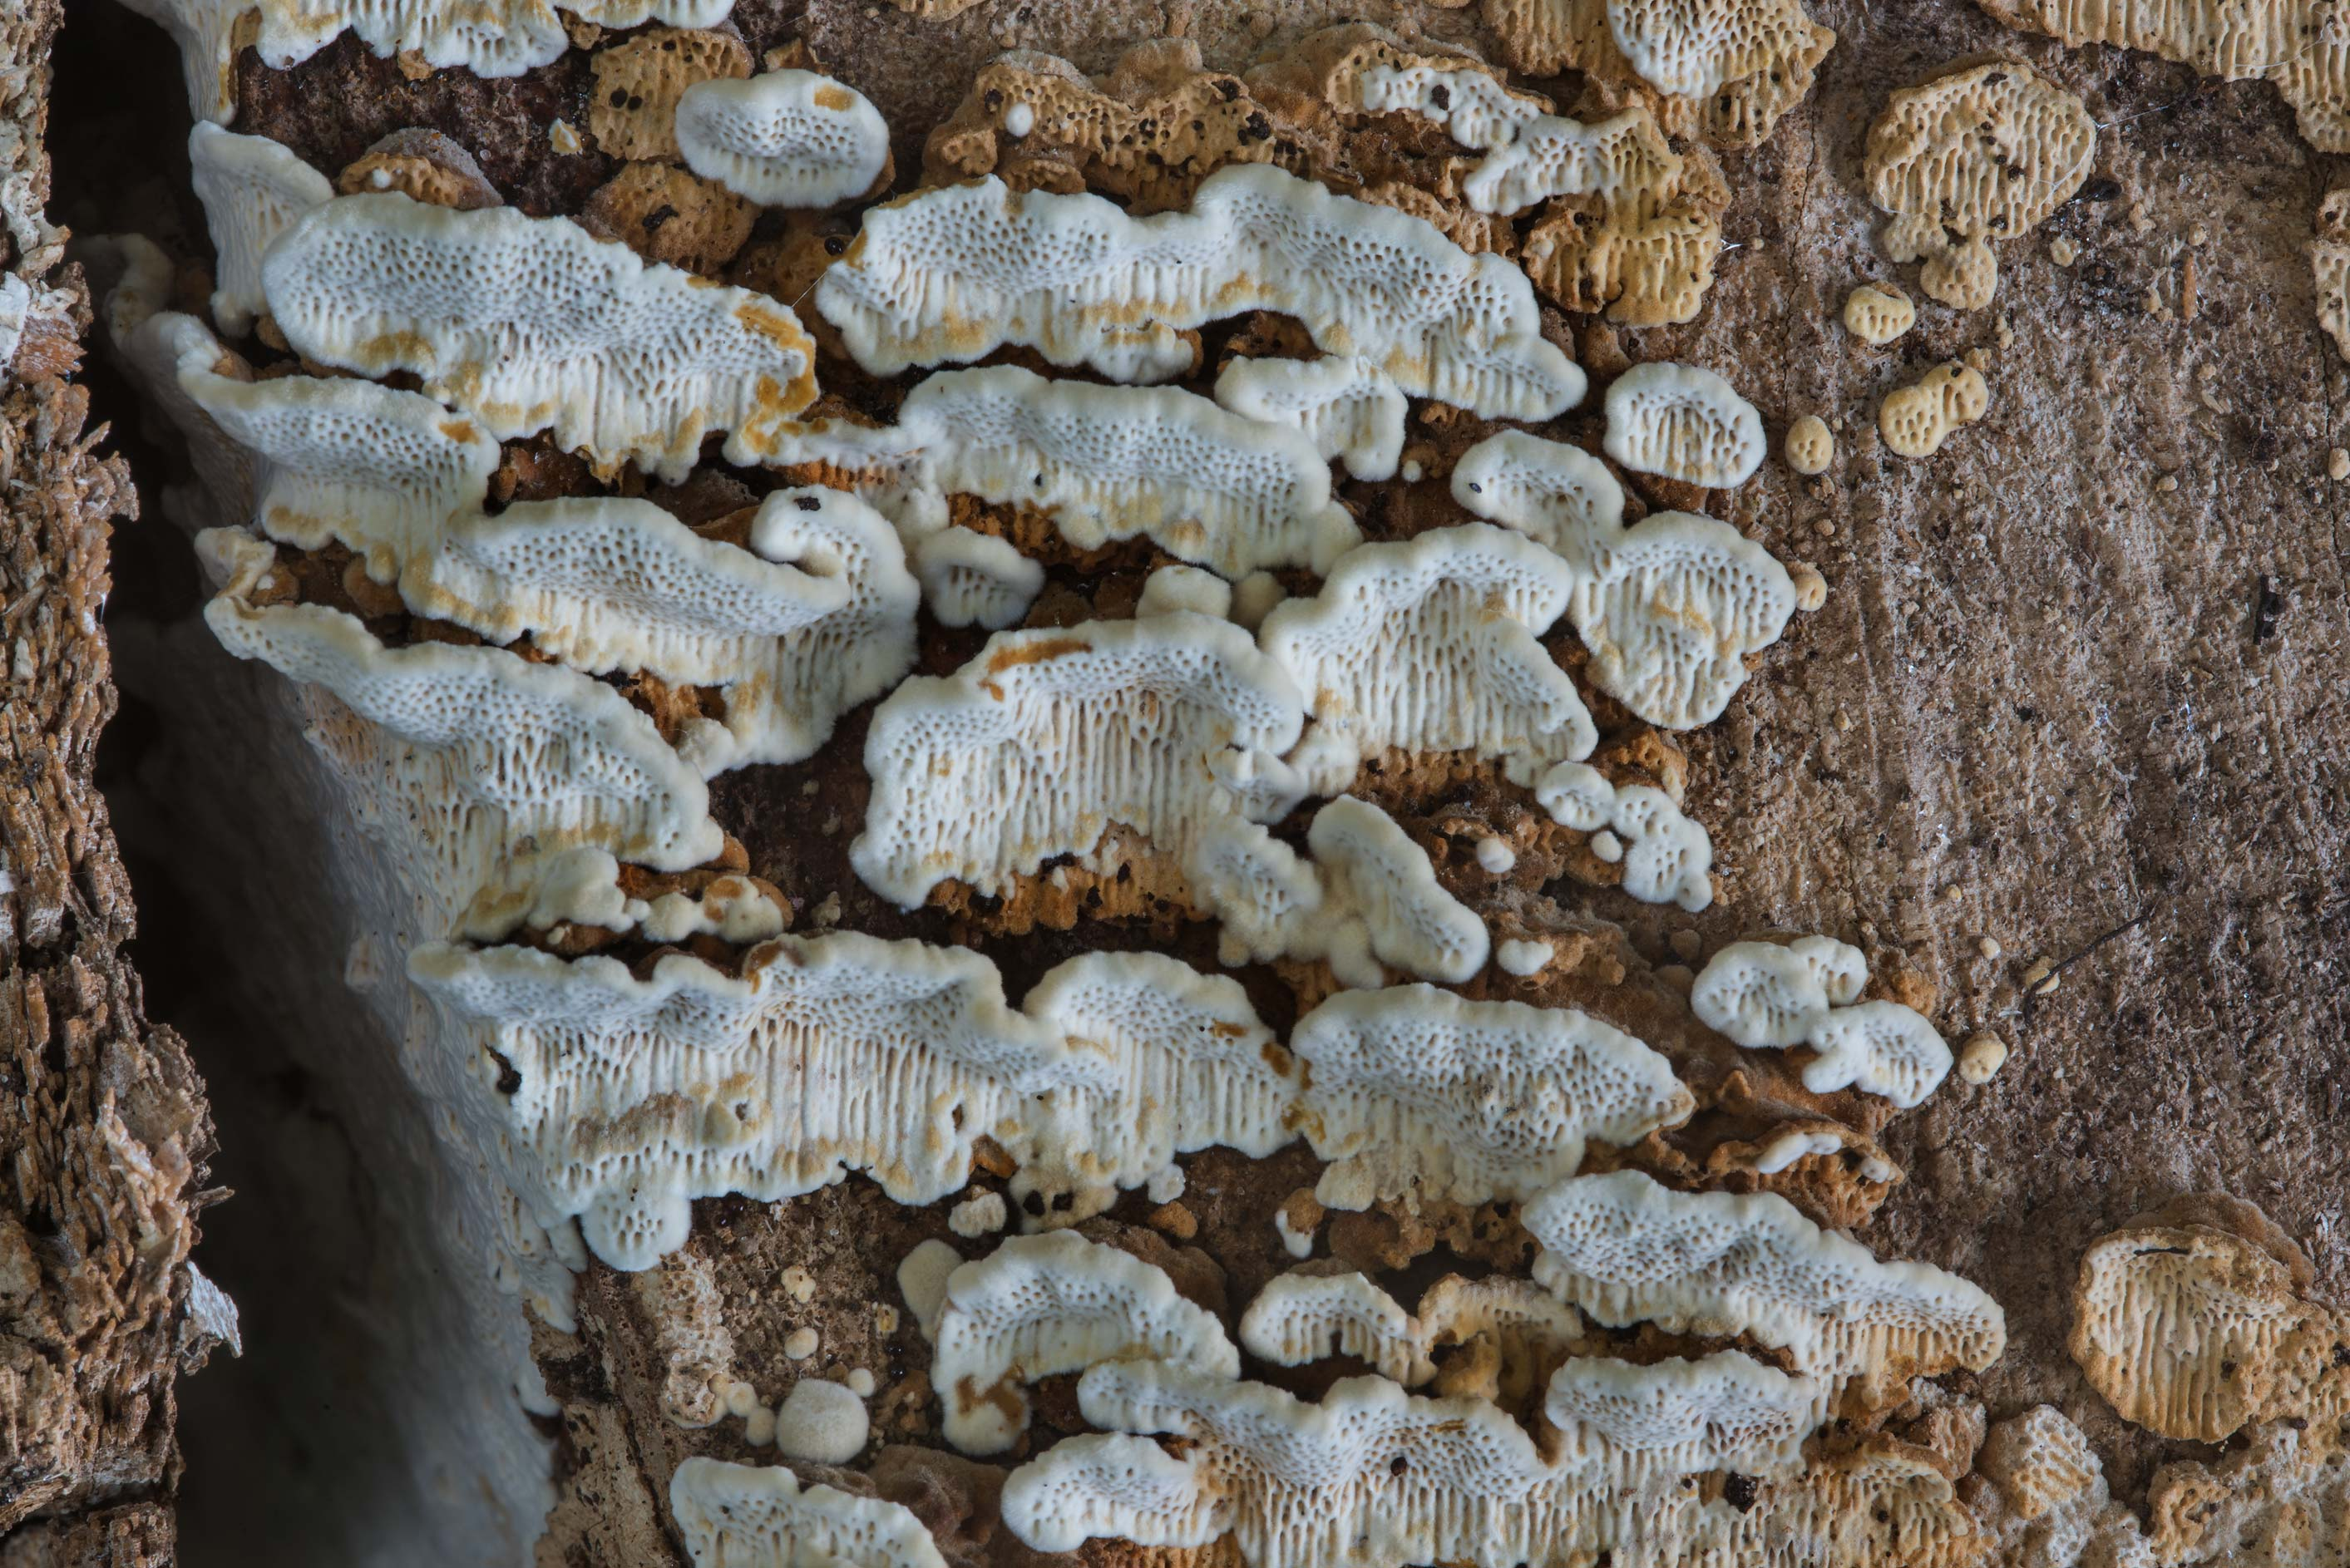 Polypore mushrooms on a cut surface of a log in Lemontree Park. College Station, Texas